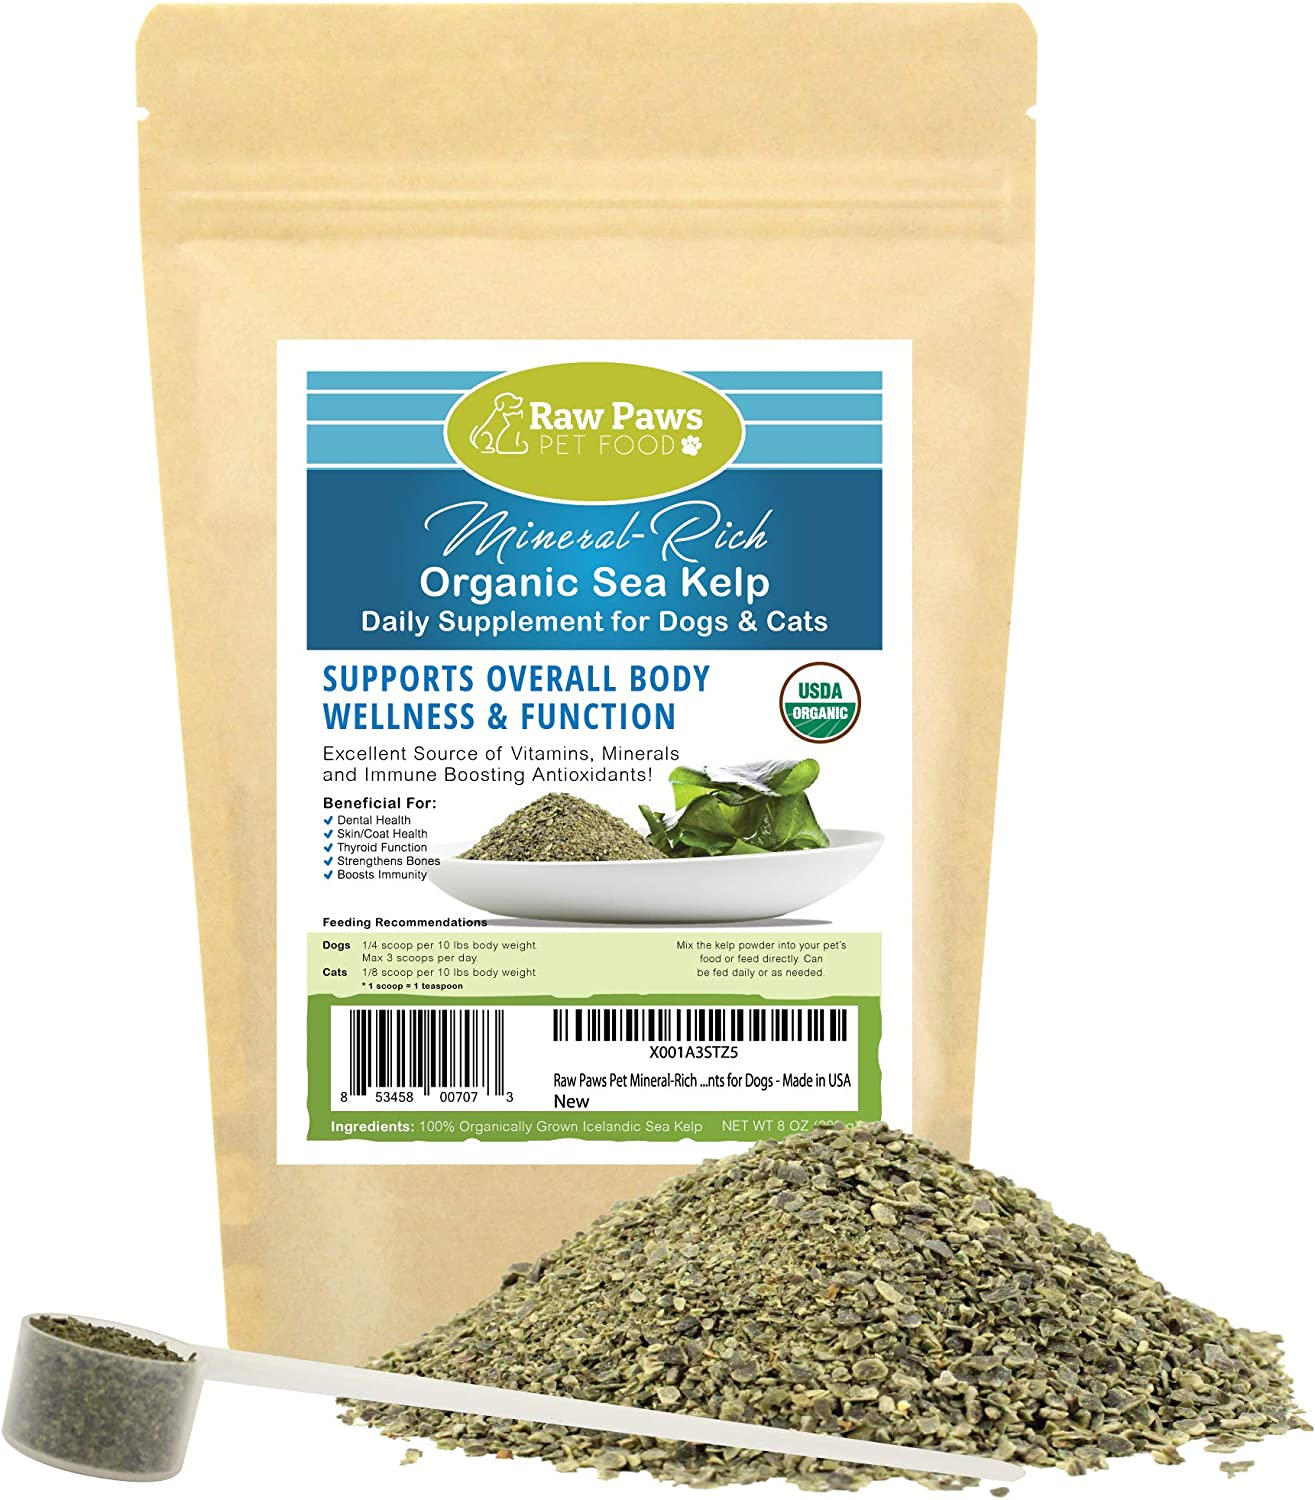 Raw Paws Pet Organic Sea Kelp for Dogs & Cats, 8-oz Seaweed Powder - Icelandic Kelp Supplements for Dogs Supports Thyroid Function, Natural Flea Control & Dog Dental Care - Dried Ocean Kelp for Dogs